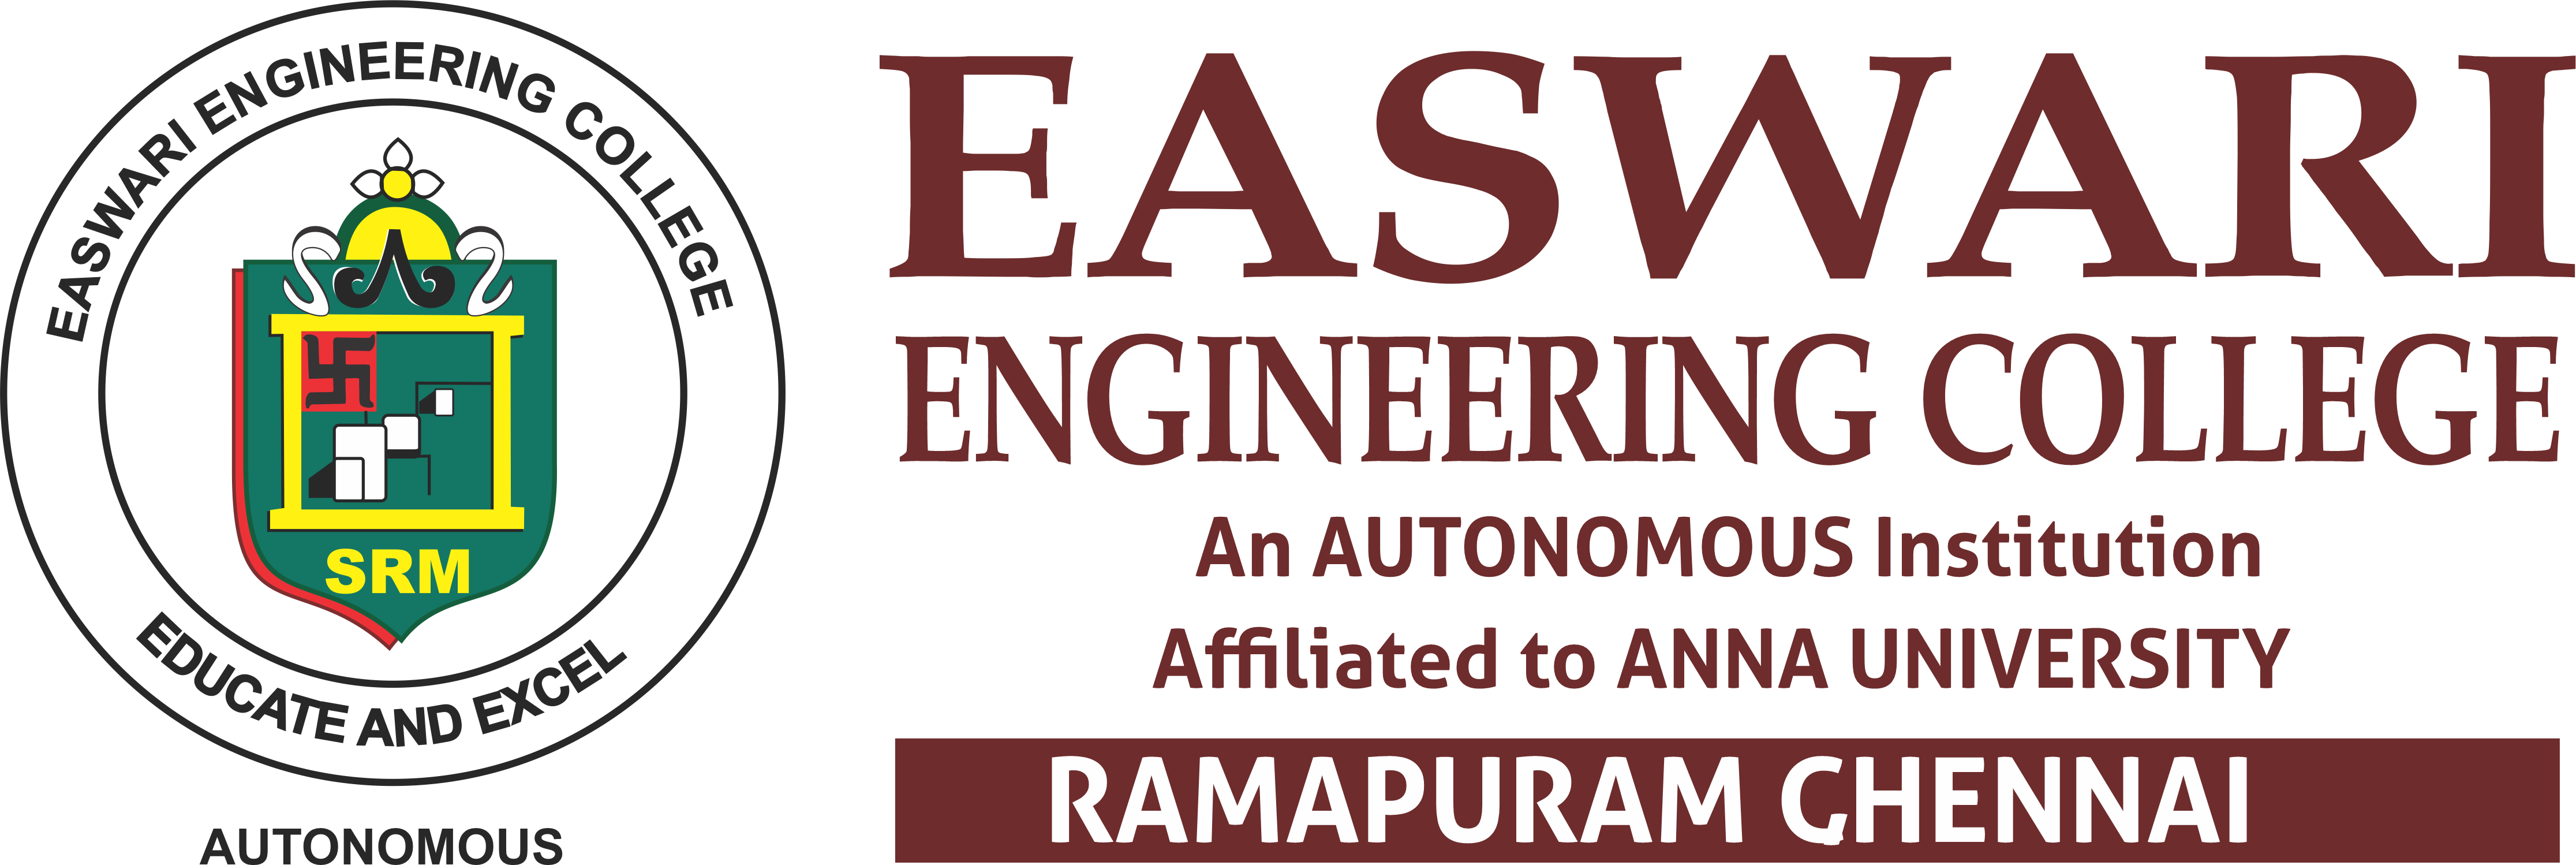 SRM Easwari Engineering College